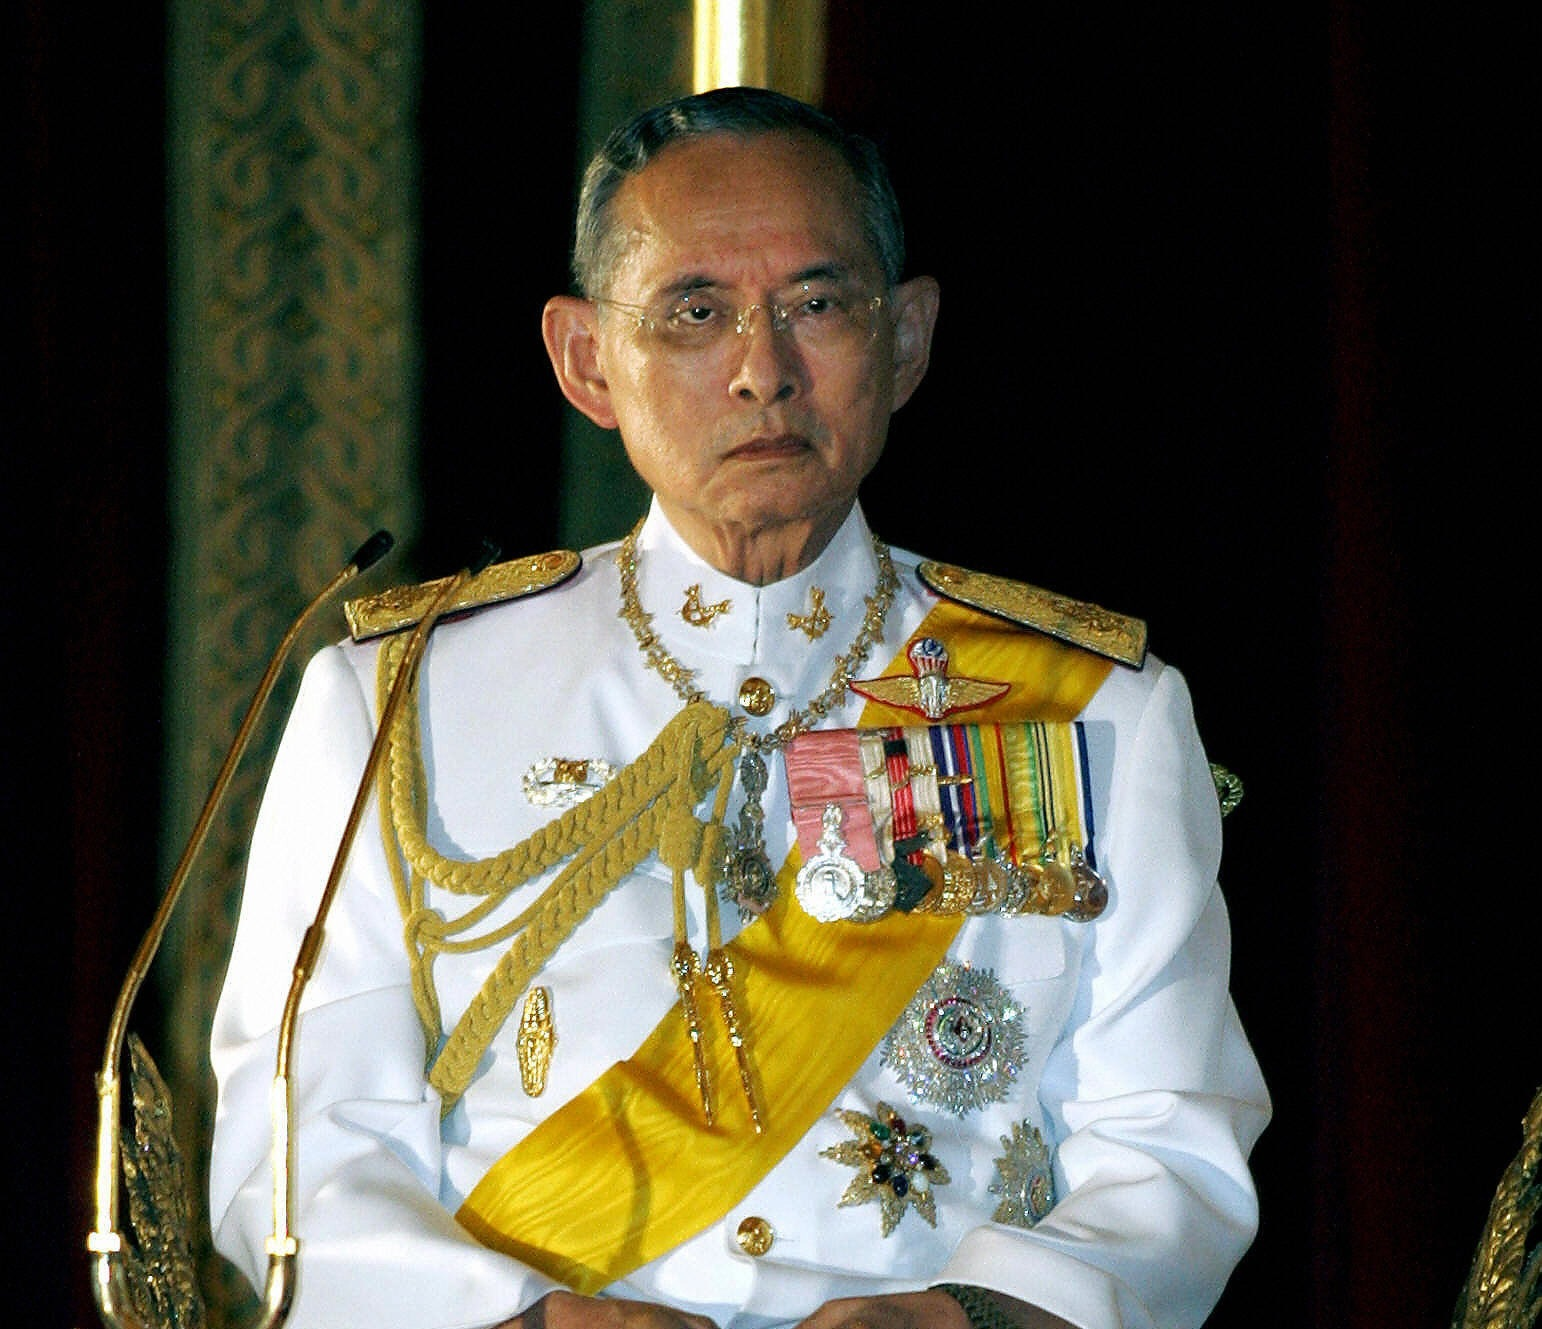 the king of thailand Probably the fastest selling book ever in thailand is the book written by the longest reigning king in the world today thailand's beloved his majesty king bhumibol adulyadej about this favorite dog.